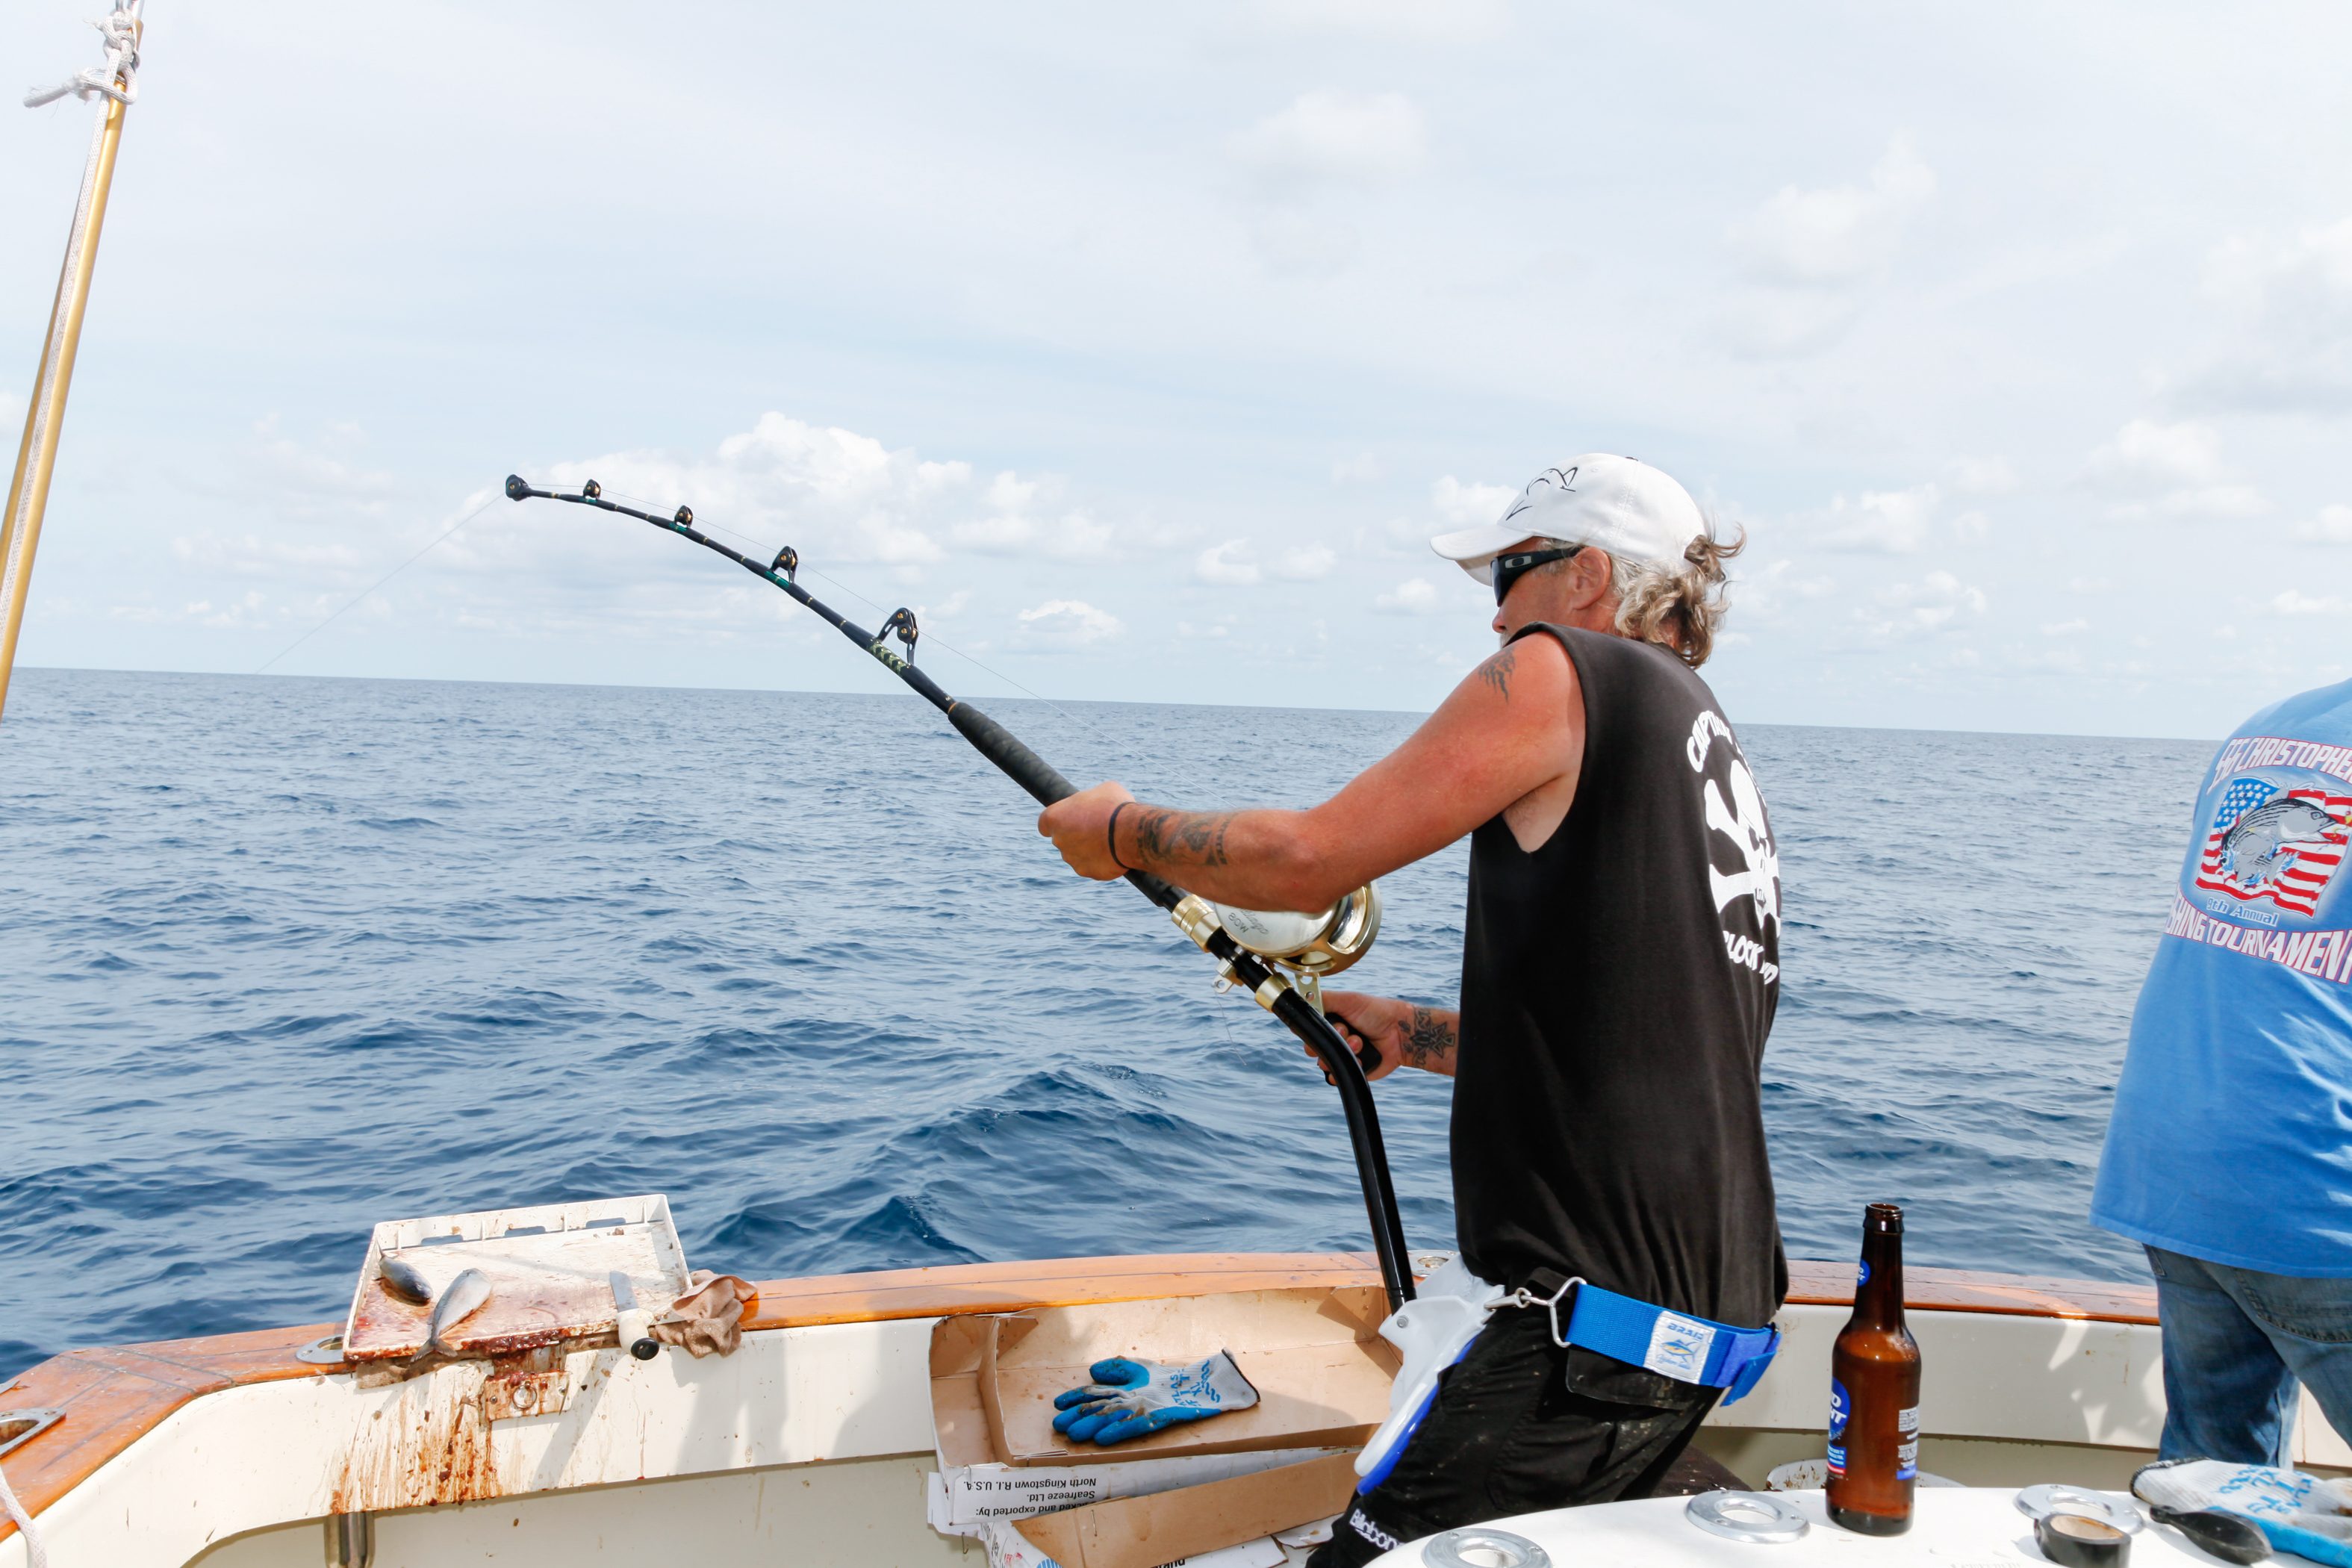 A crew member reeling in the shark using a waist harness. Though it didn't take too long to bring the shark in, the shark put up a fight.